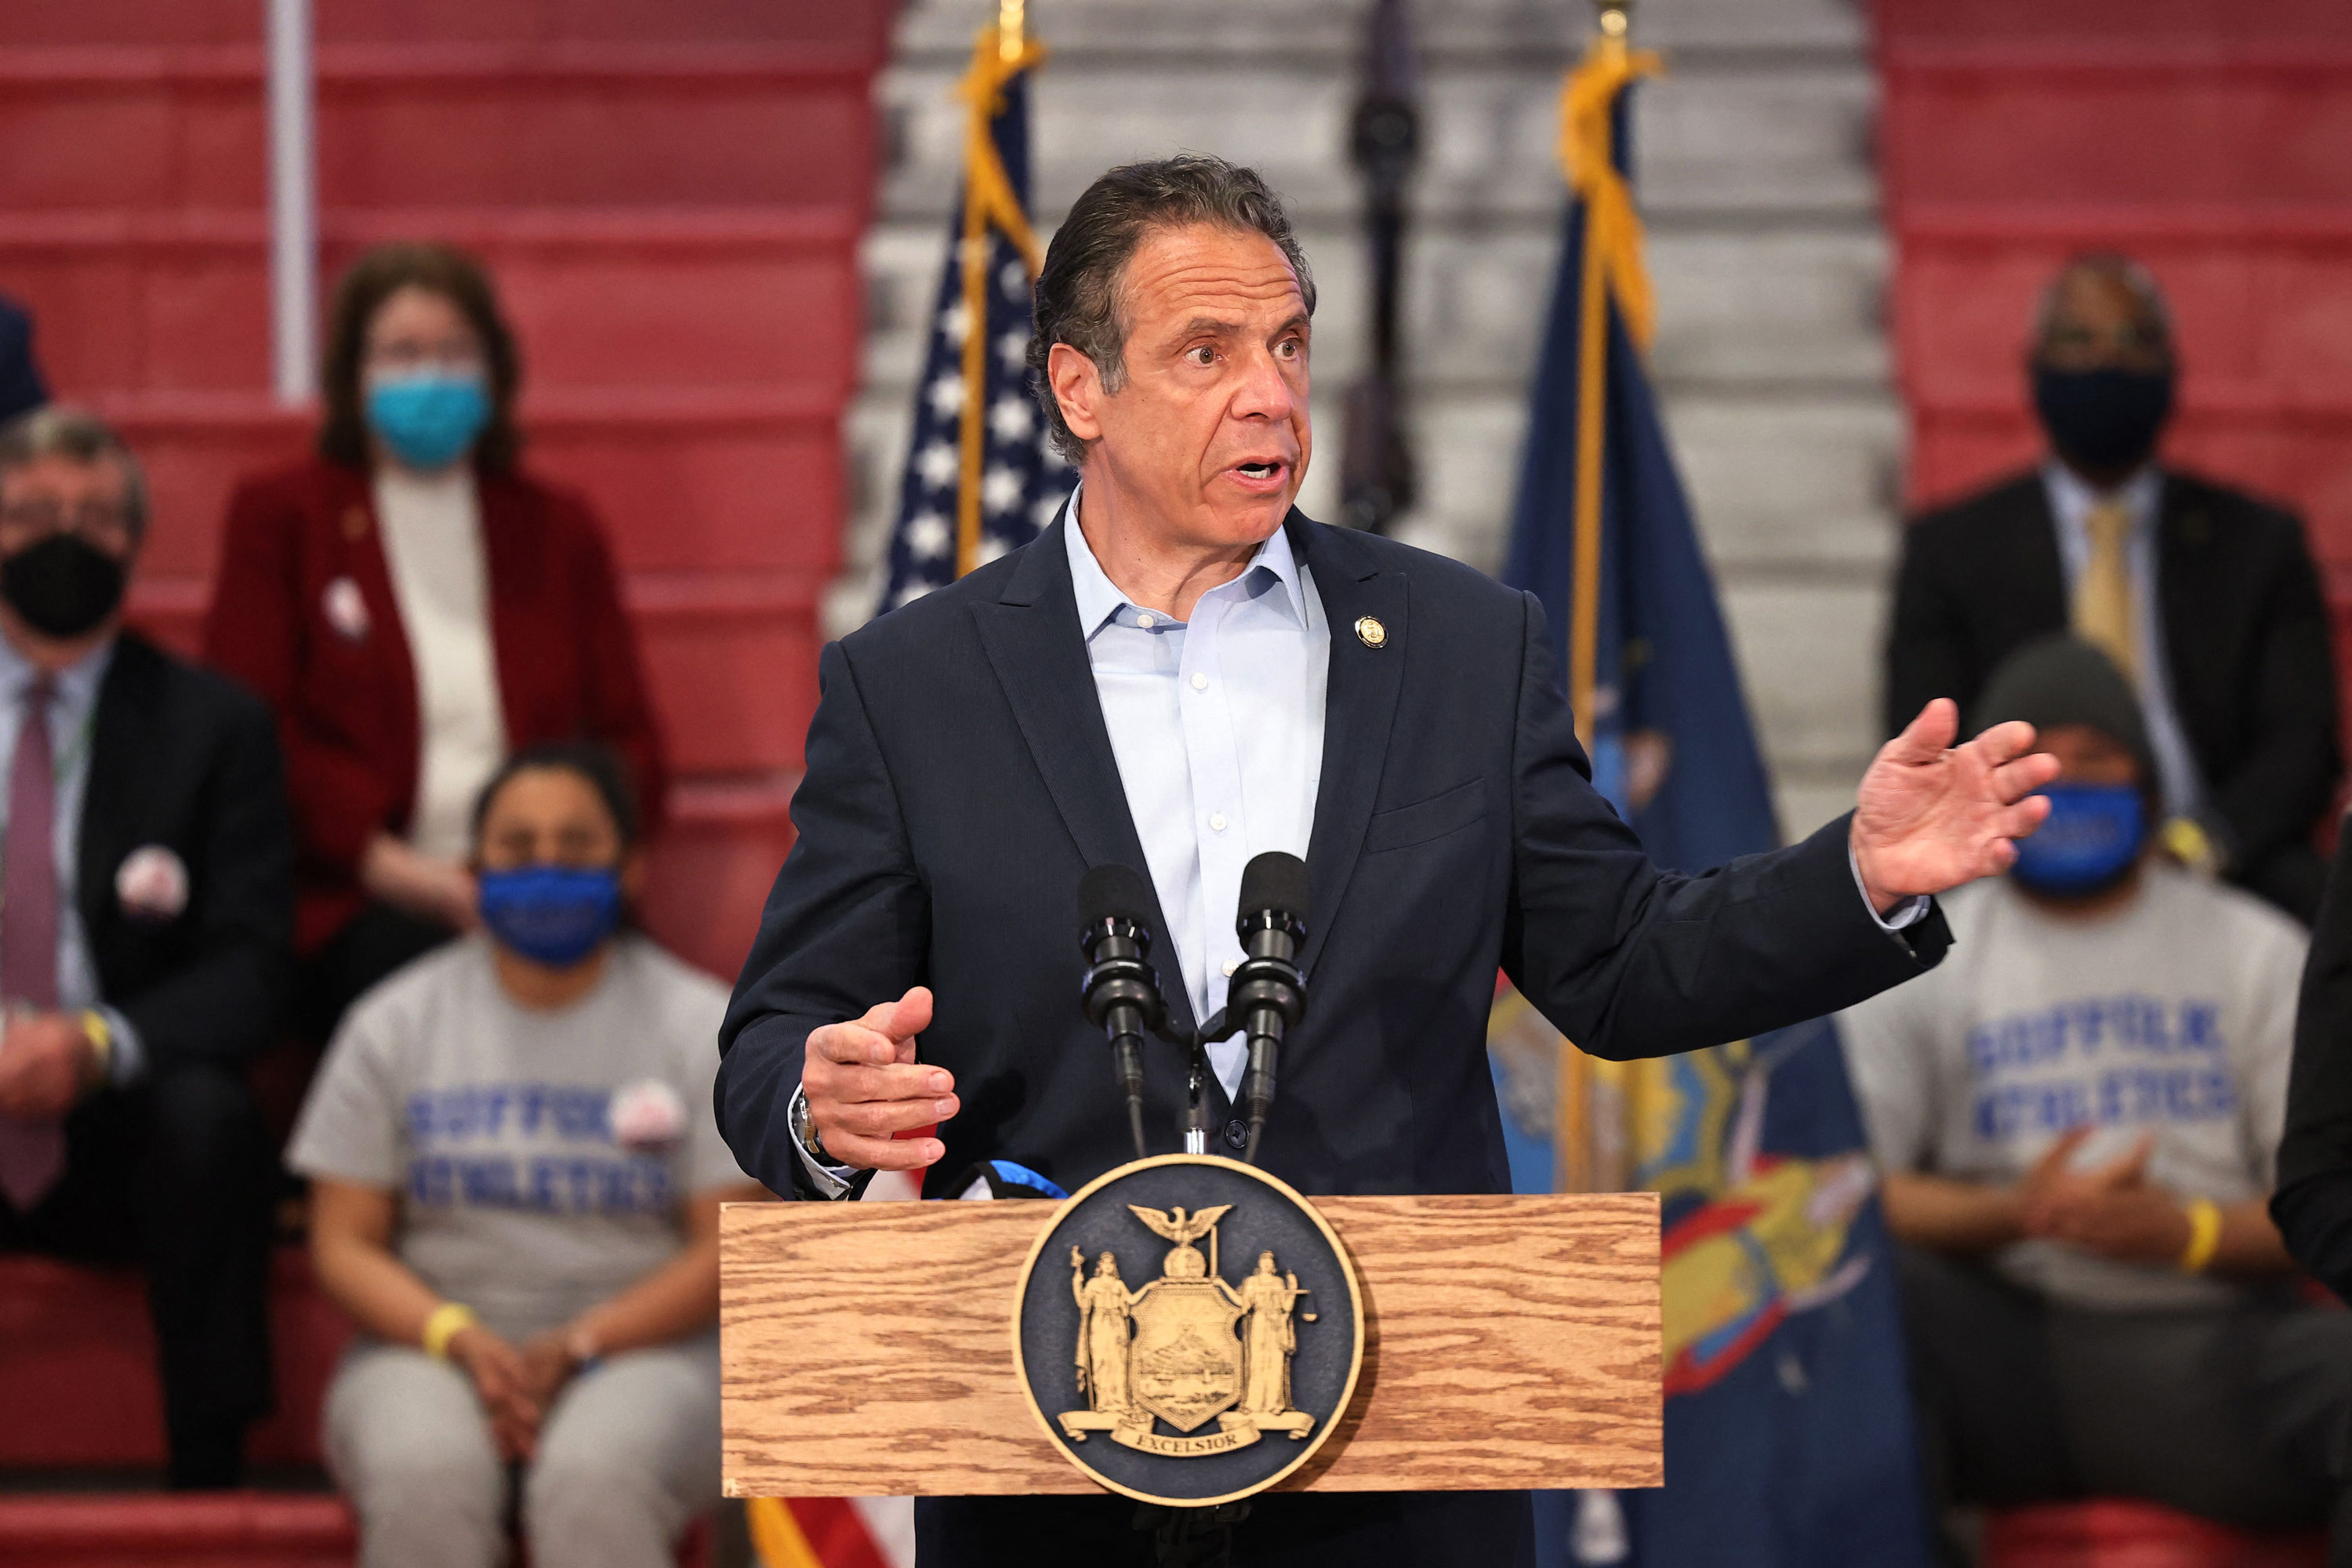 Governor Andrew Cuomo speaks during a press conference at Suffolk County Community College on April 12 in Brentwood, New York.